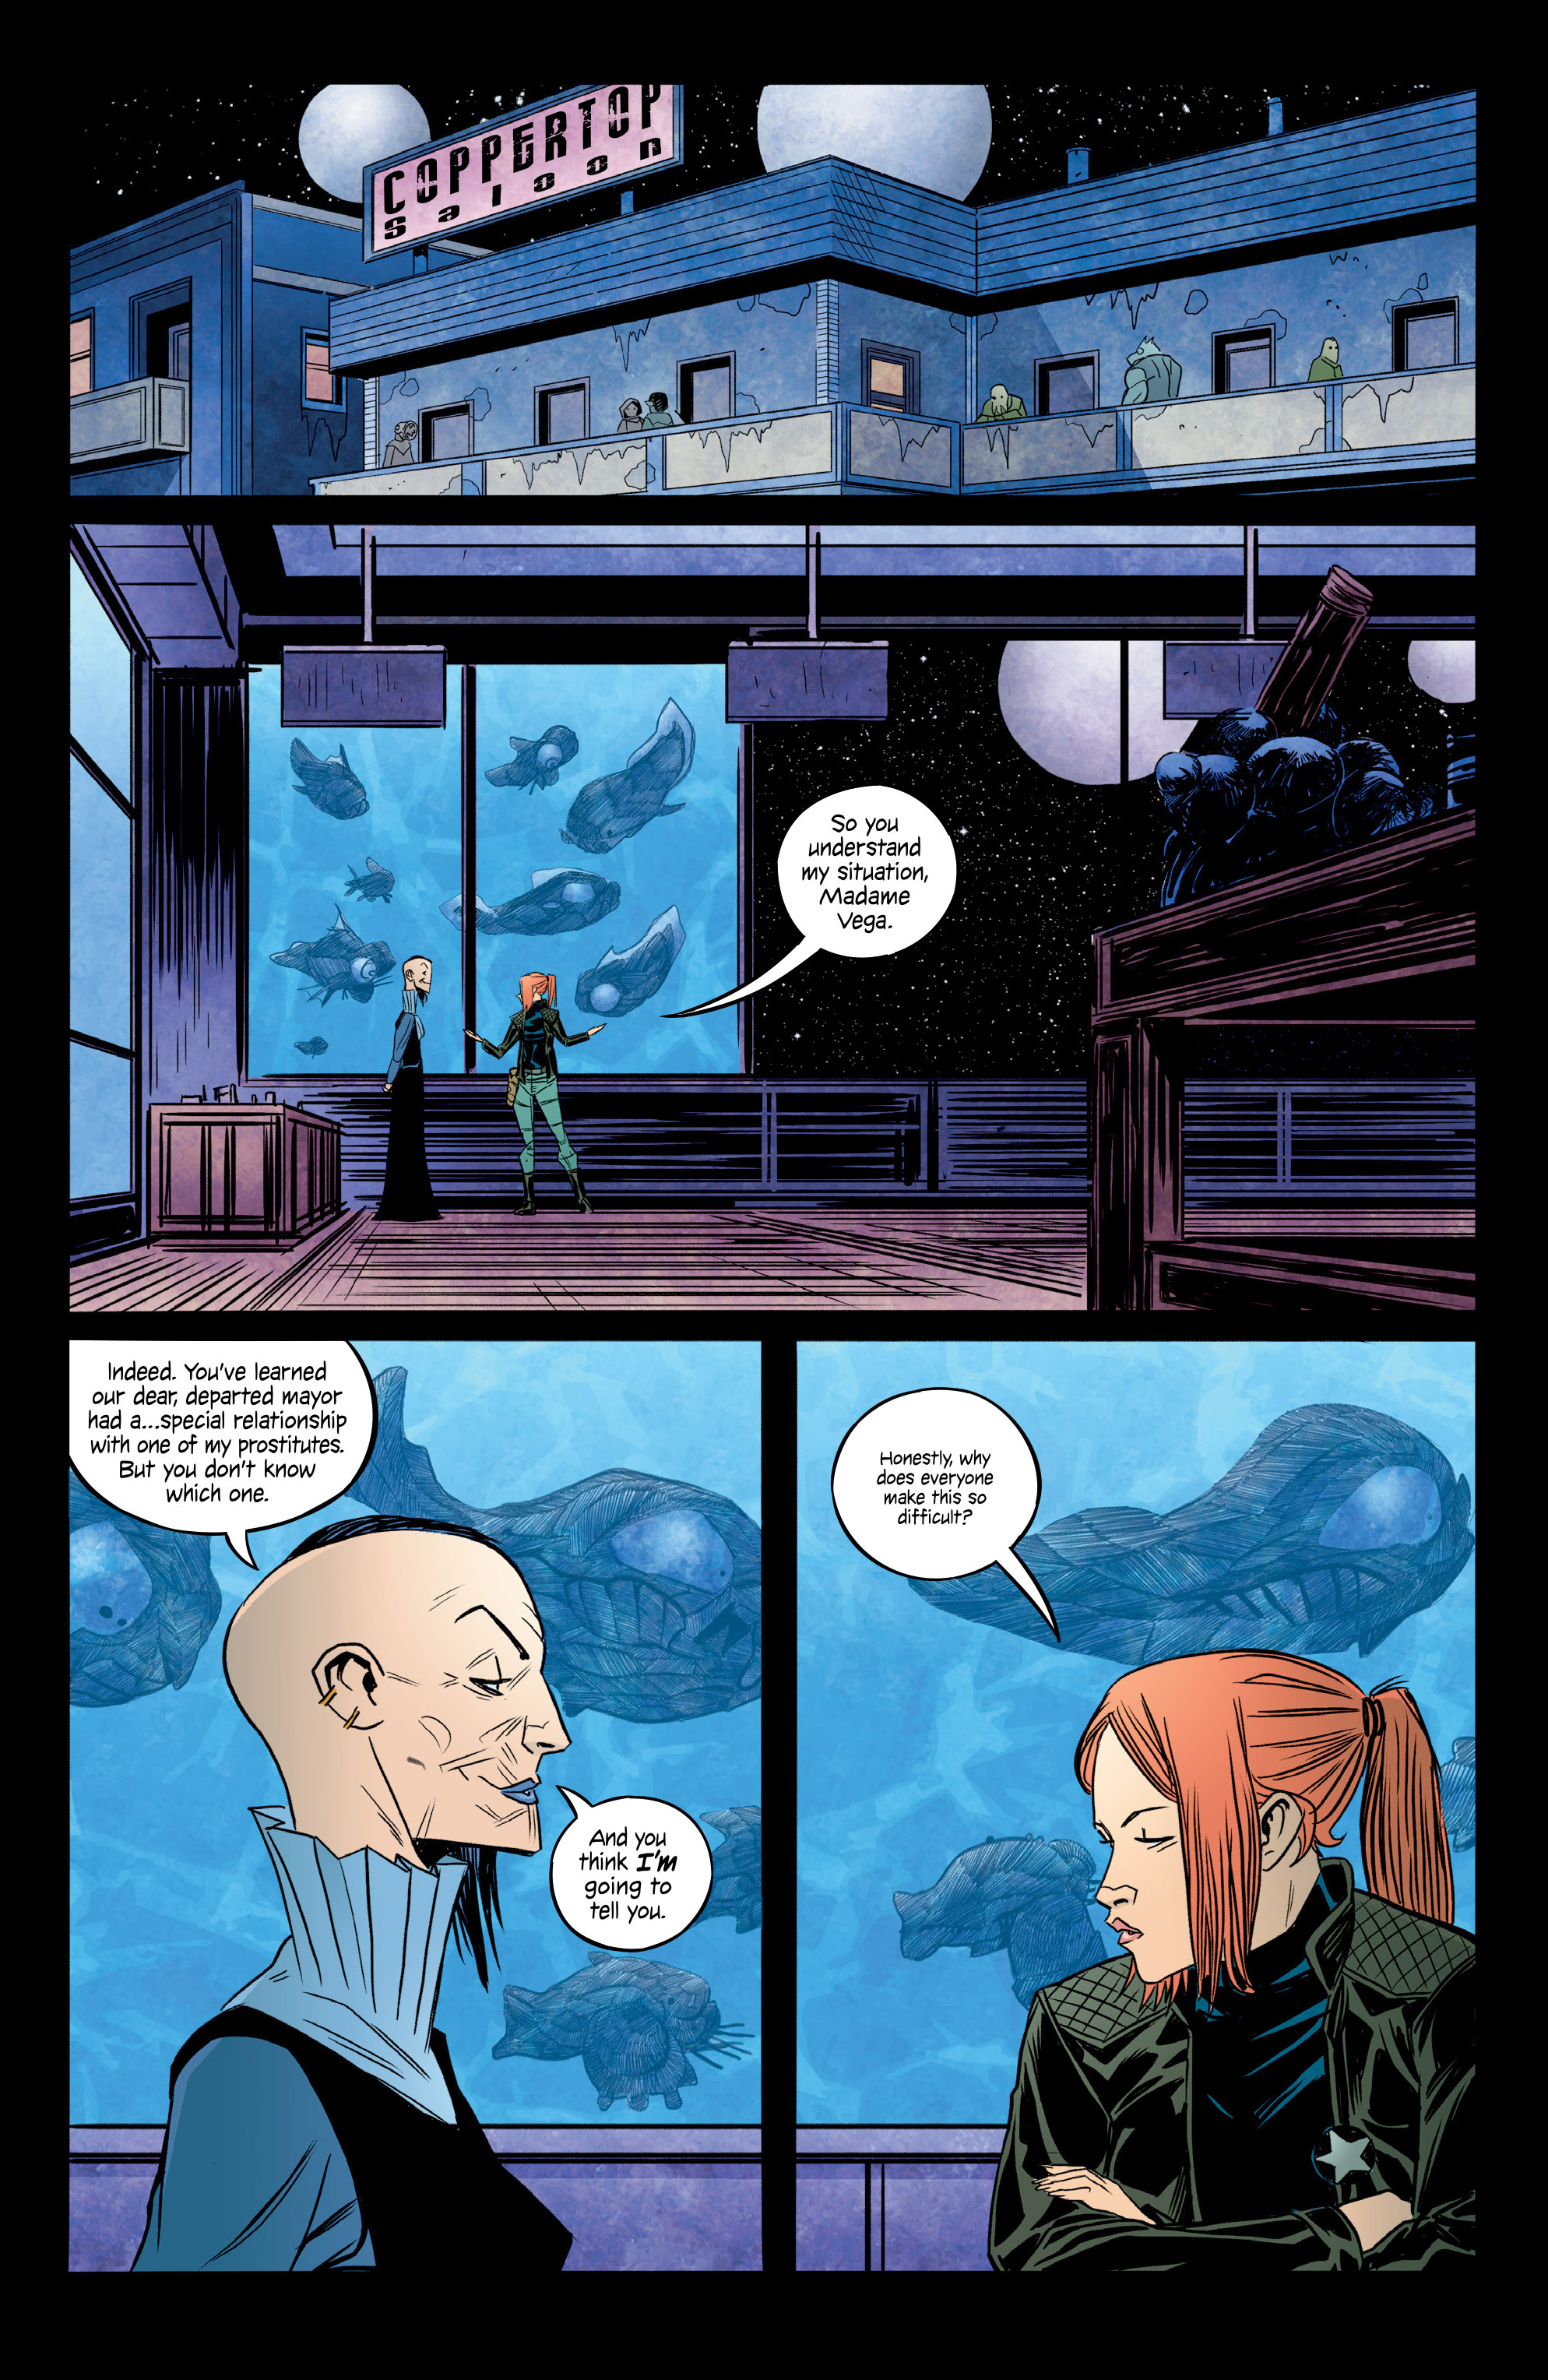 Read online Copperhead comic -  Issue #13 - 16